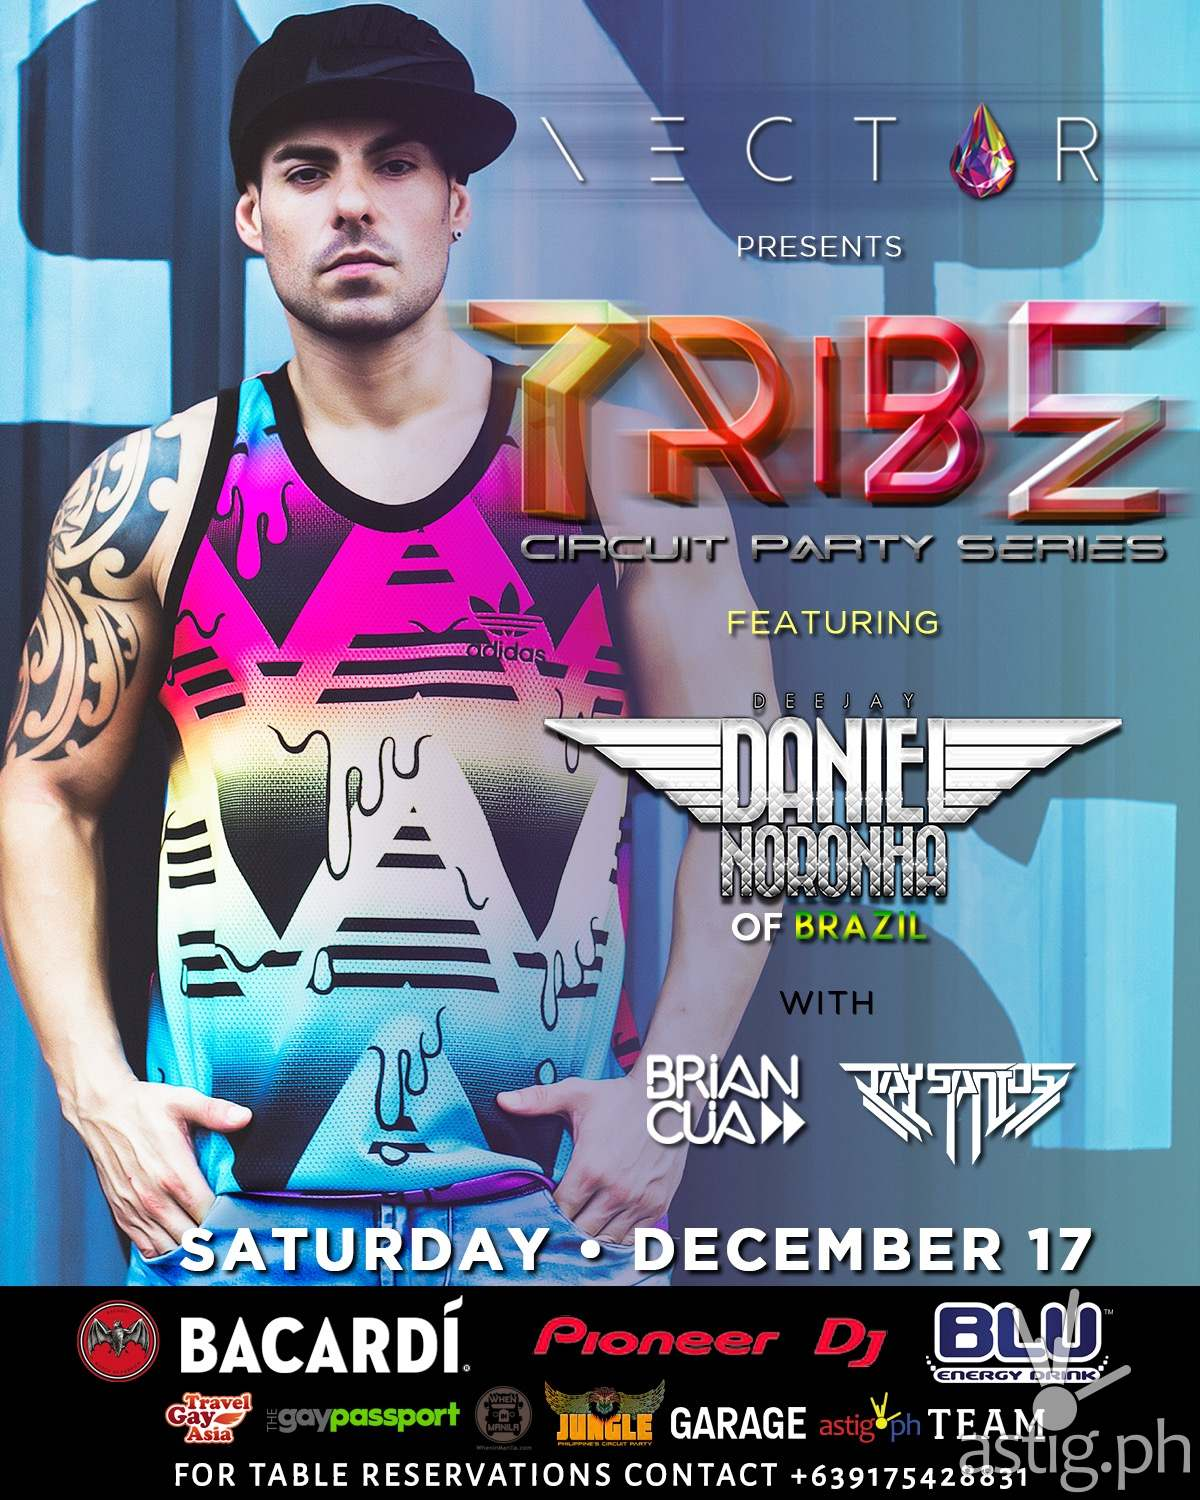 Tribe Circuit Party at Nectar Nightclub